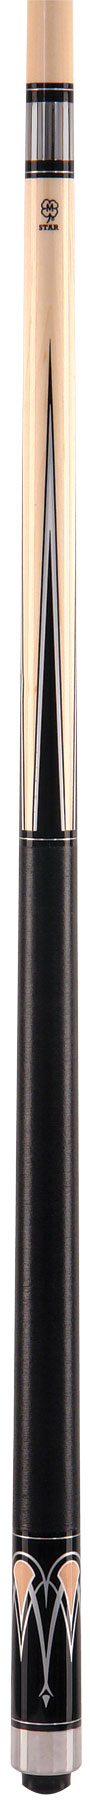 s14 Star Pool Cue by McDermott